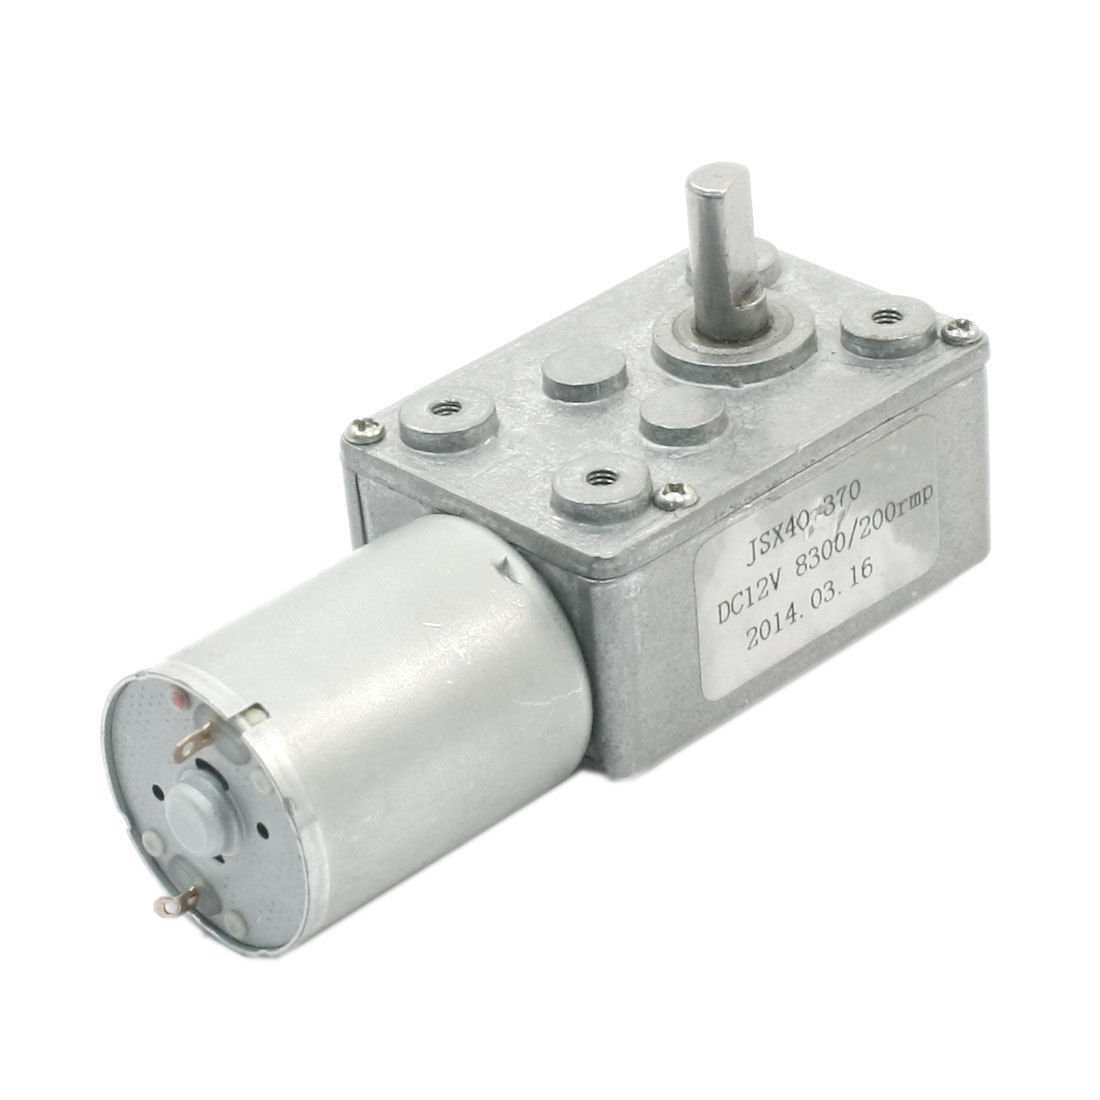 DC 12V Reduction Ratio 8300RPM/200RPM 2-Pin Connecting Worm Gear Motor JSX40-370